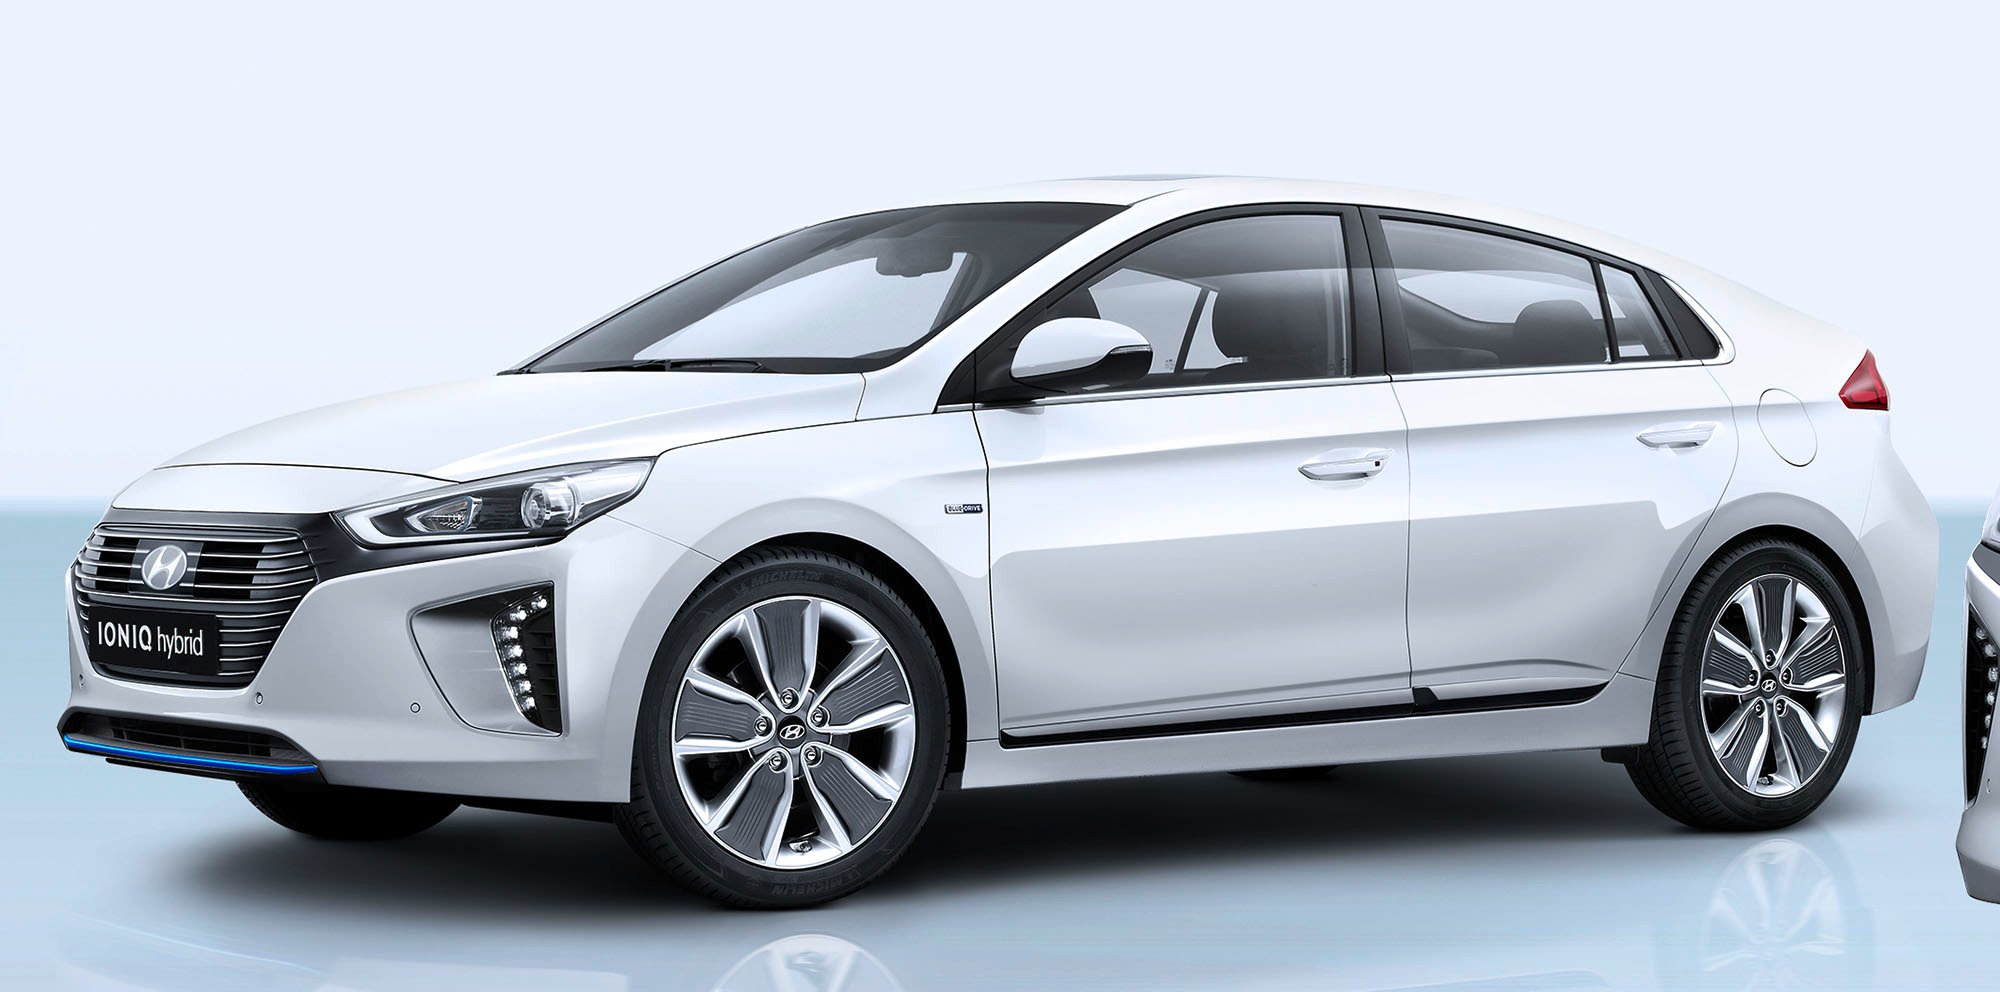 2017 hyundai ioniq plug in hybrid and electric unveiled photos 1 of 4. Black Bedroom Furniture Sets. Home Design Ideas